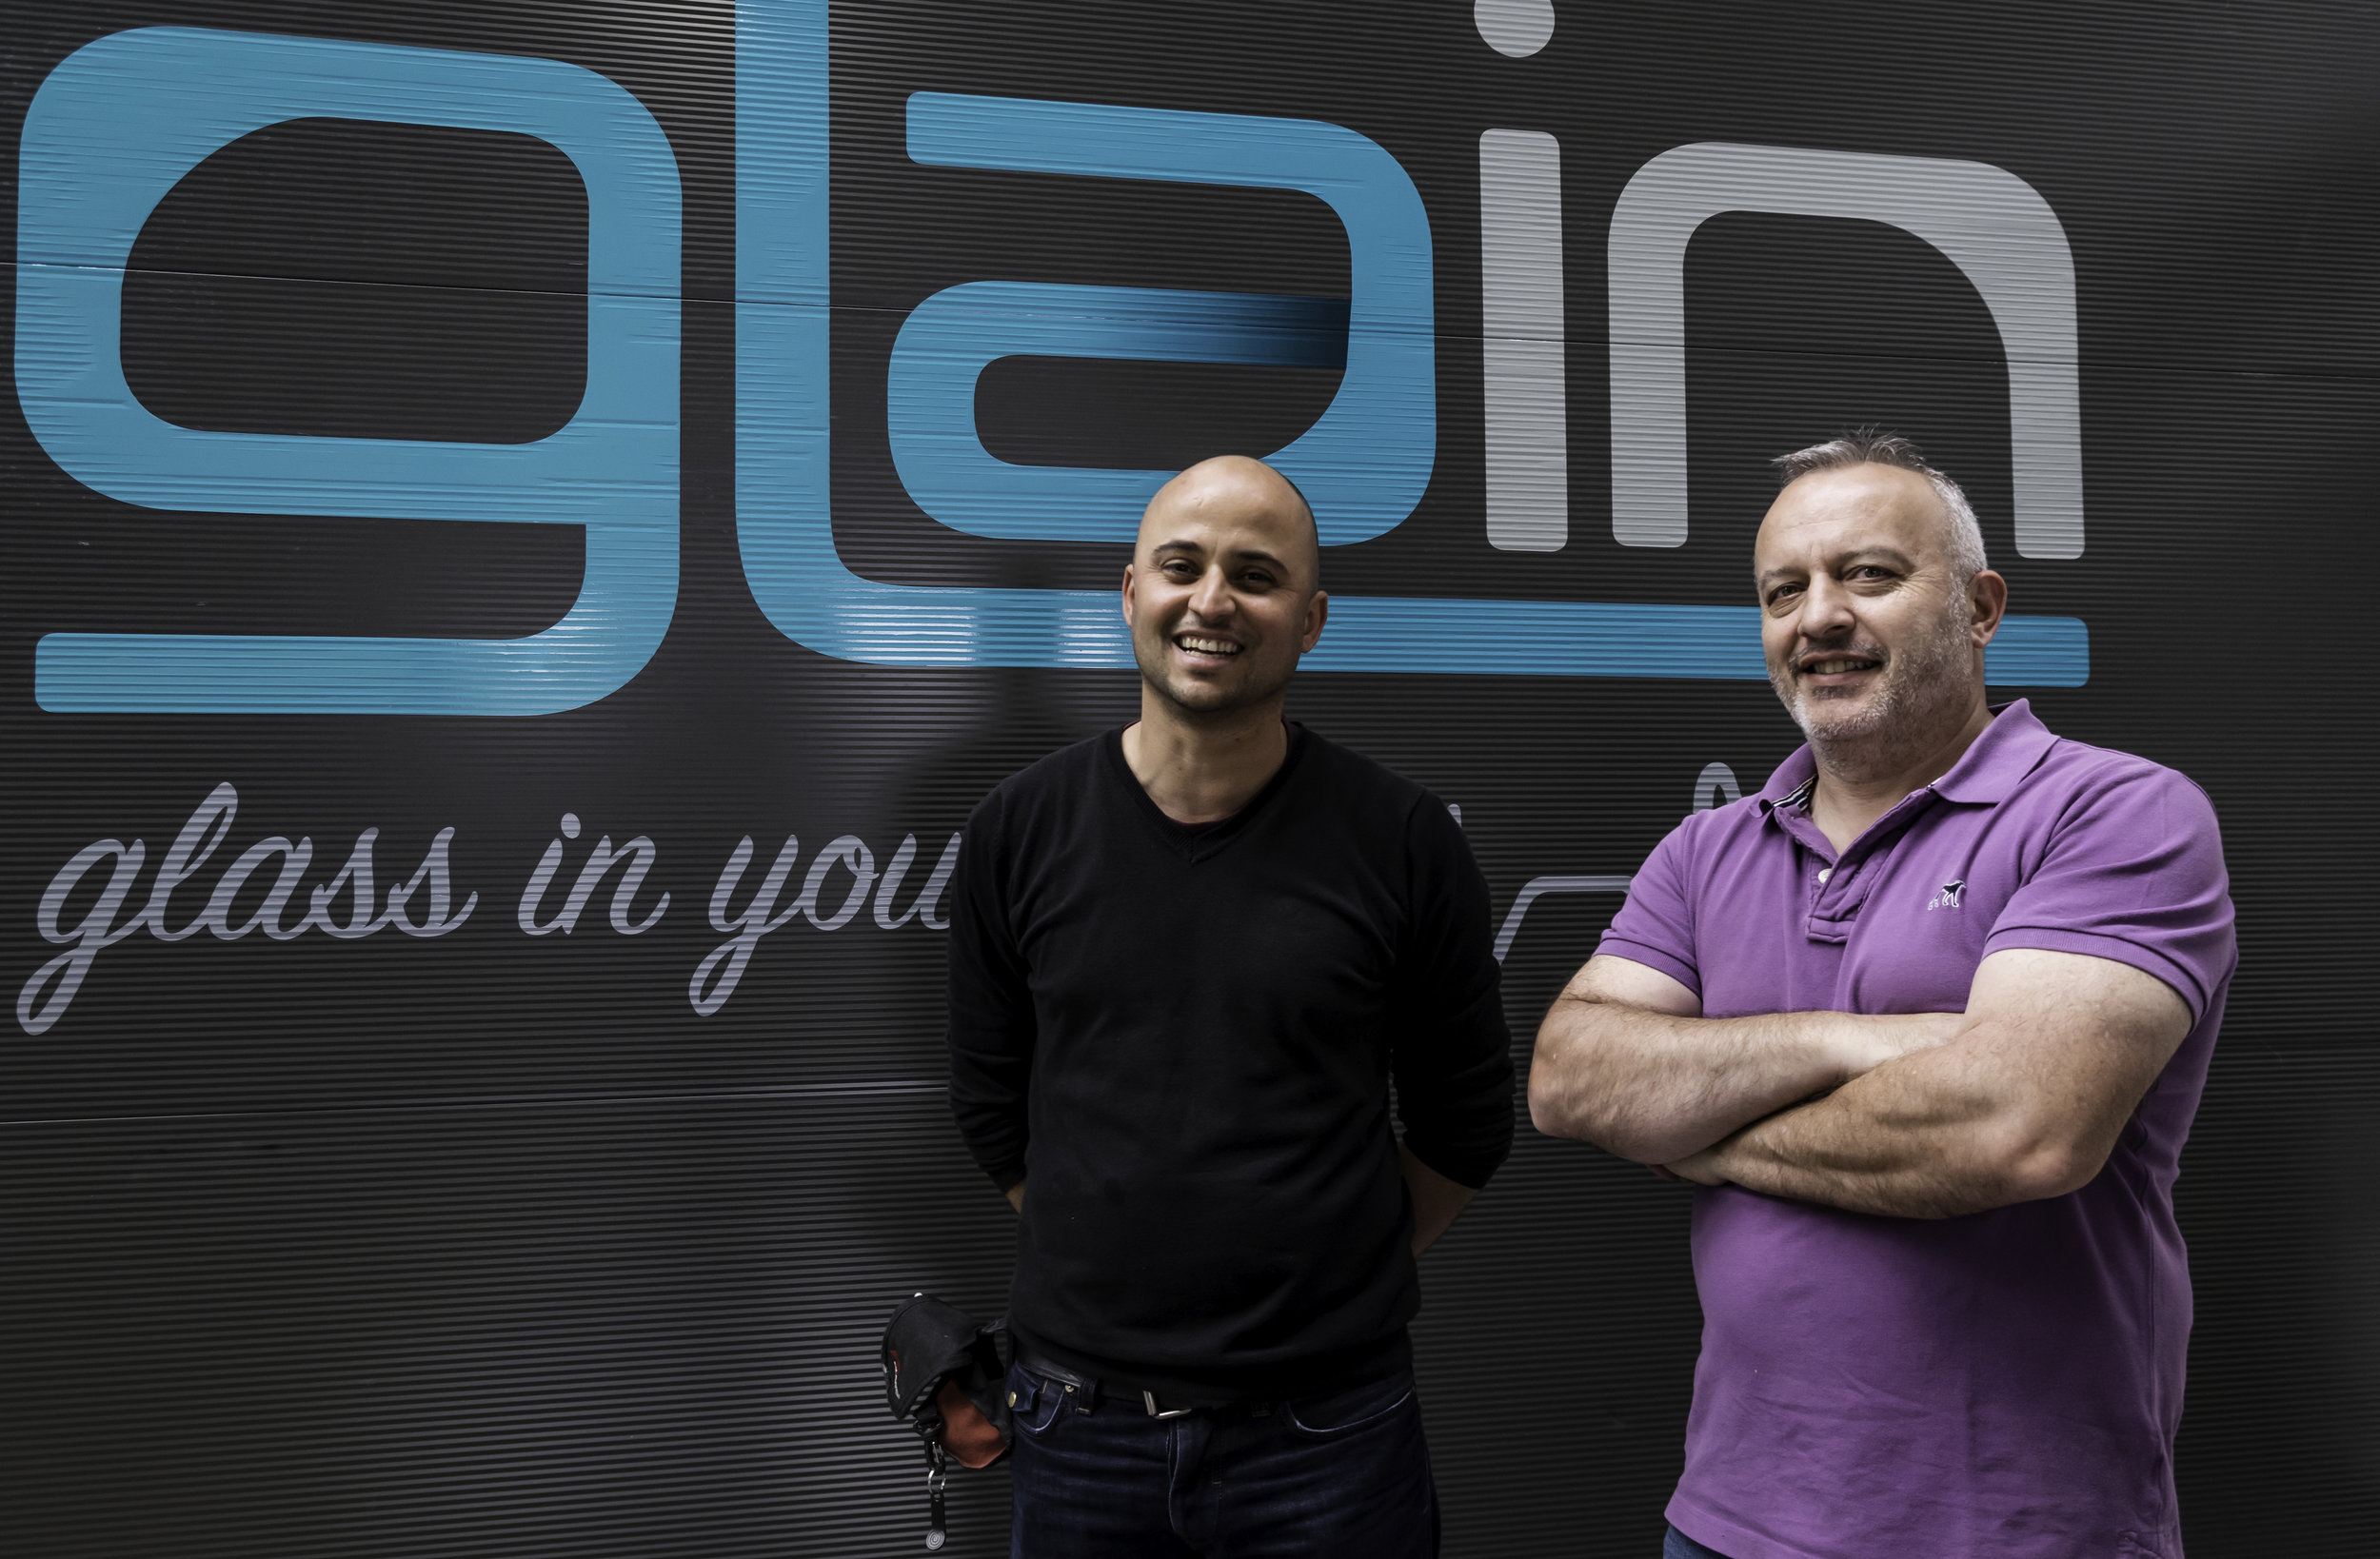 Rogerio Moreira, General Manager (on the left) and Nuno Morais, Ceo and Founder (on the right)